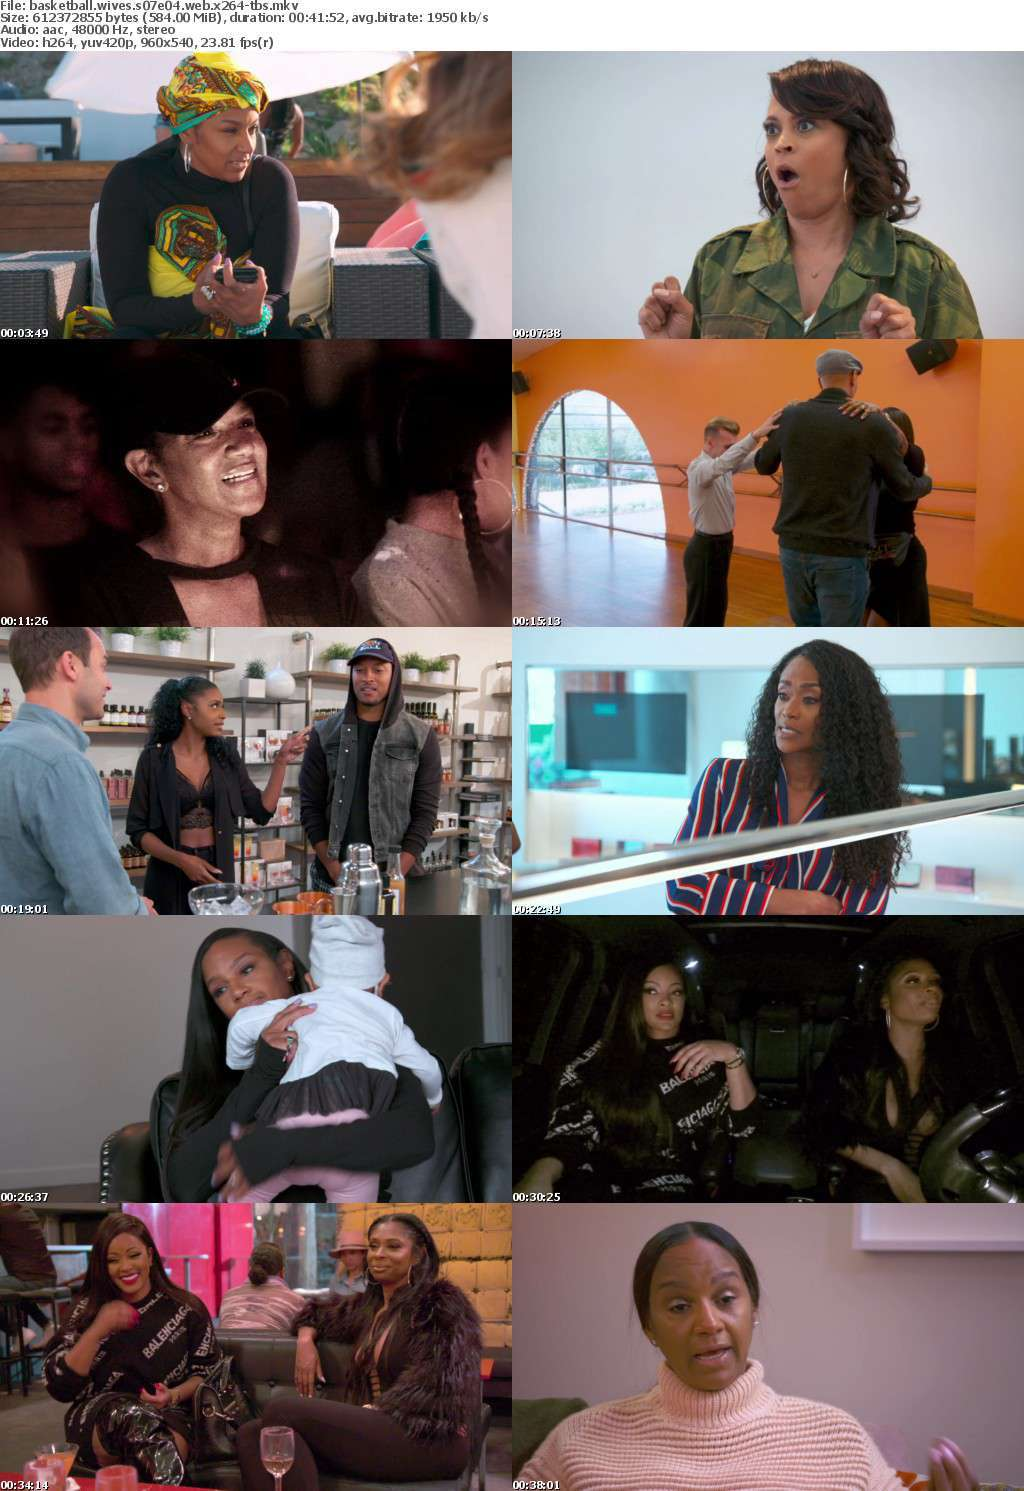 Basketball Wives S07E04 WEB x264-TBS